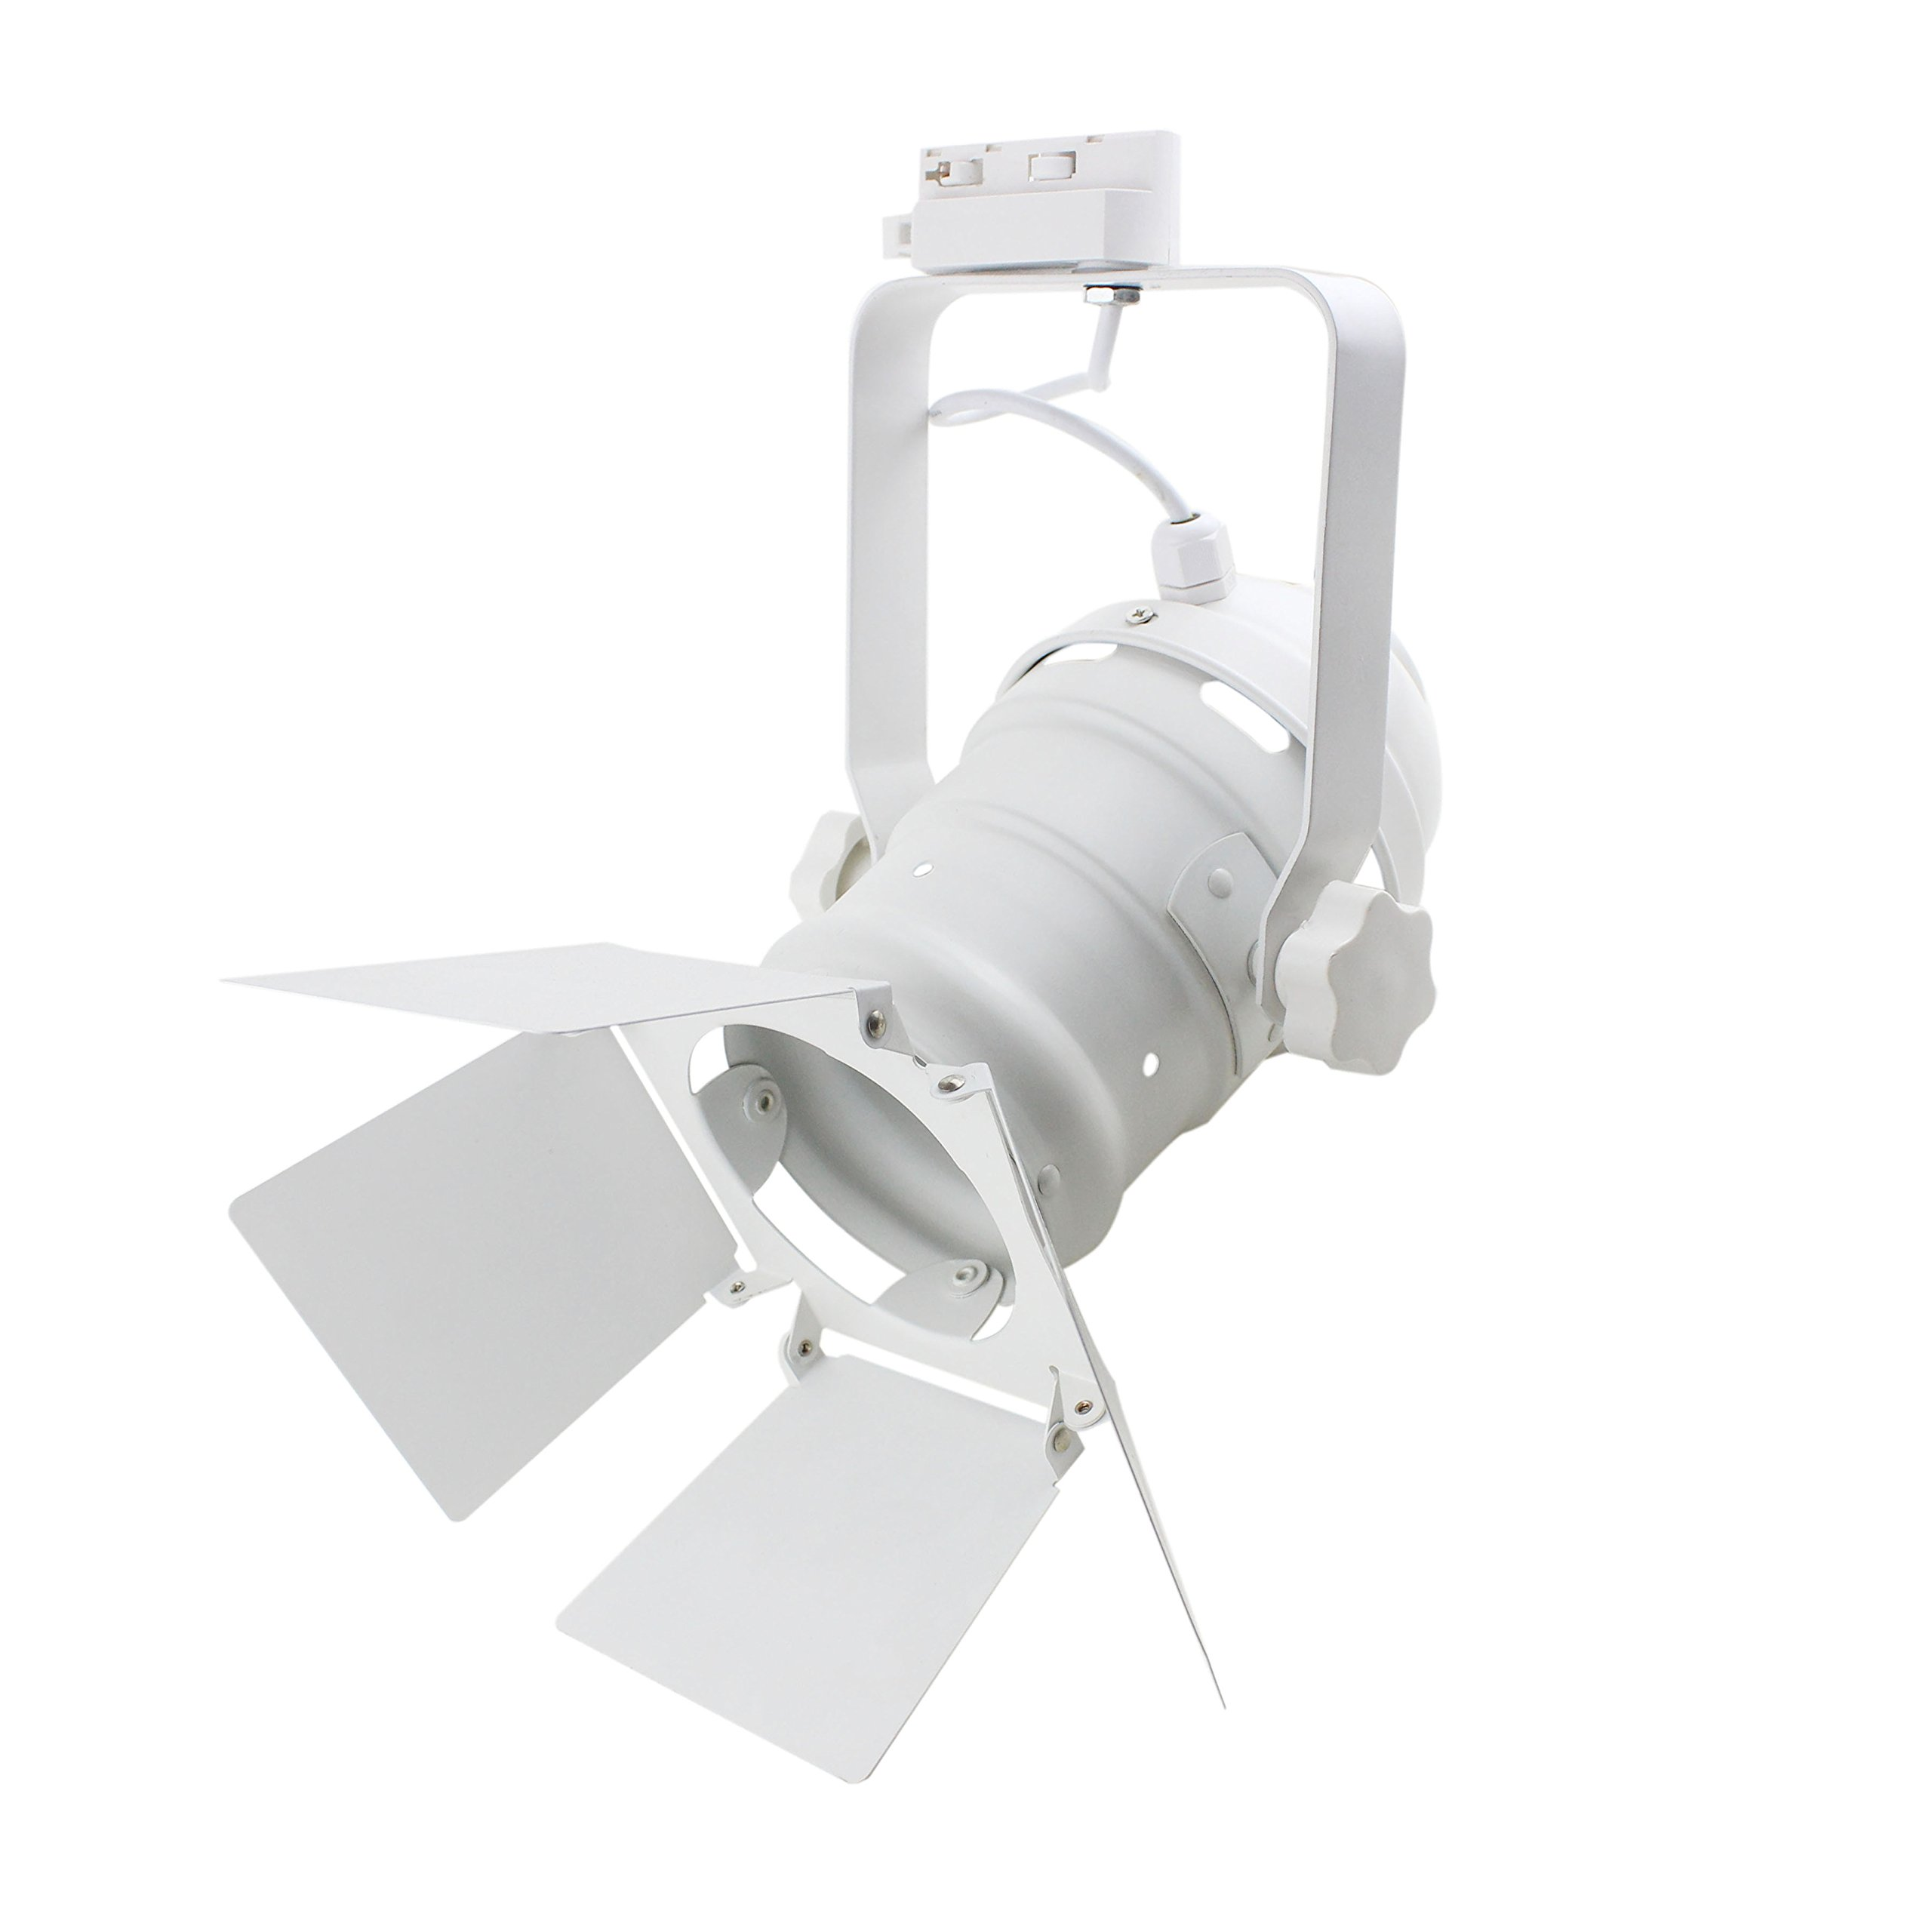 J.LUMI TRK9000W Track Lighting Head | Theater Light with 4-Leaf Barn Doors | Adjustable Tilt Angle | PAR30 Round Can | Compatible Rail RAL1002W (Bulb and Track Not Included)